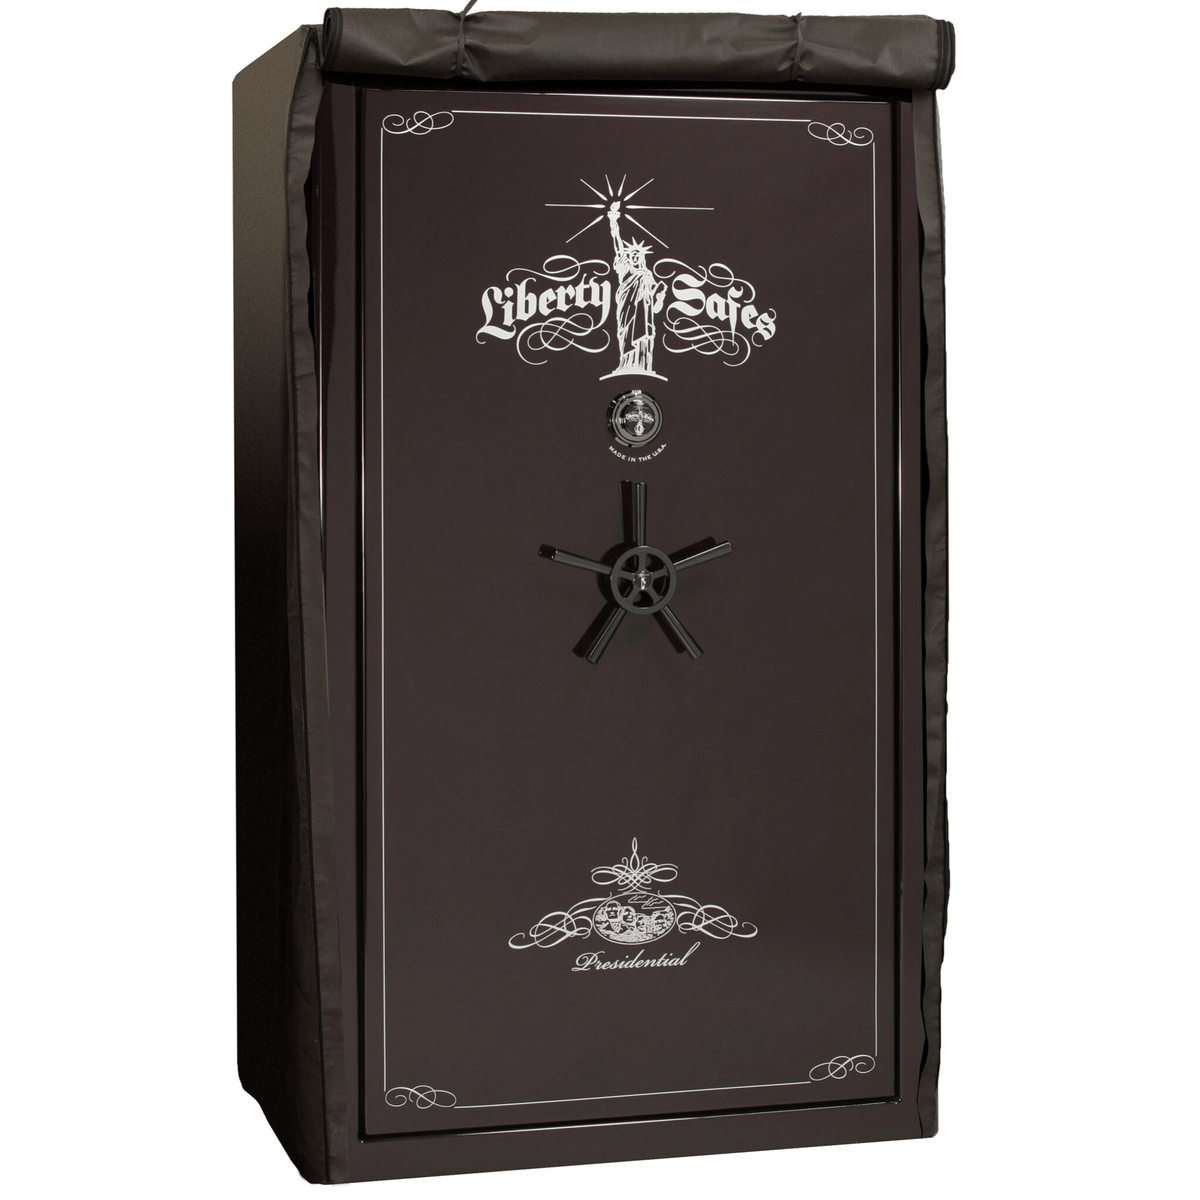 Accessory - Security - Safe Cover - 50 size safes